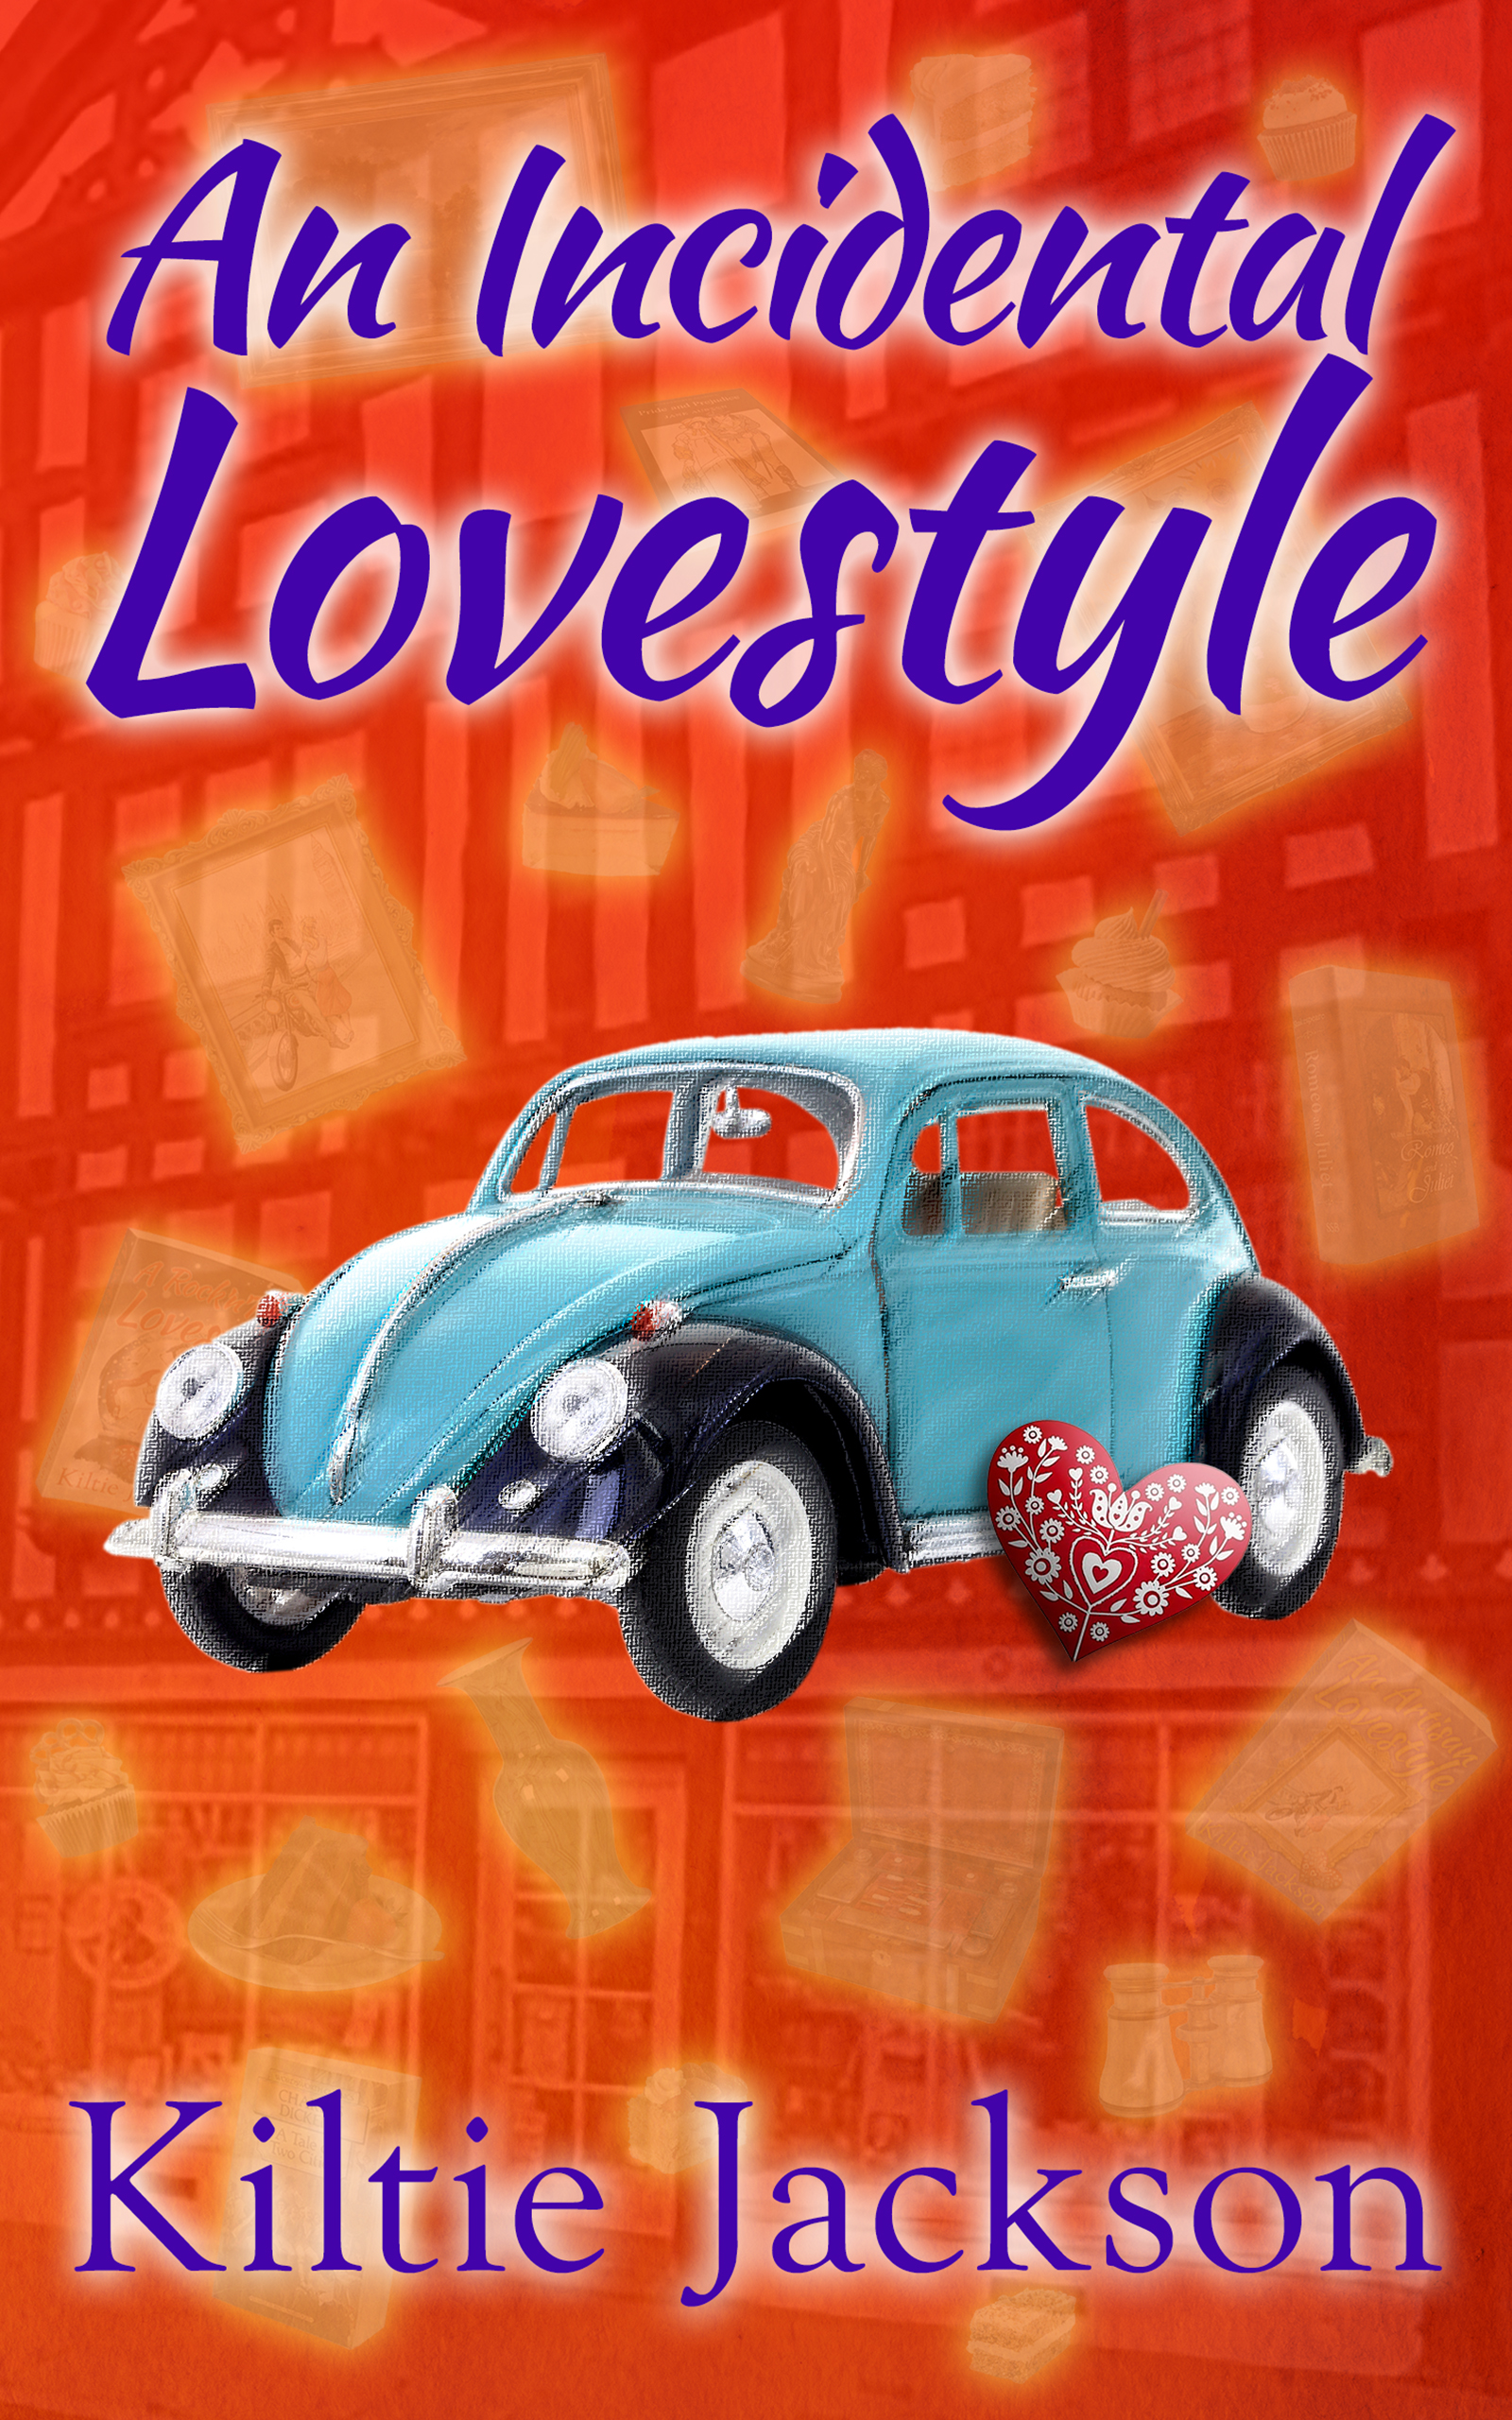 An Incidental Lovestyle